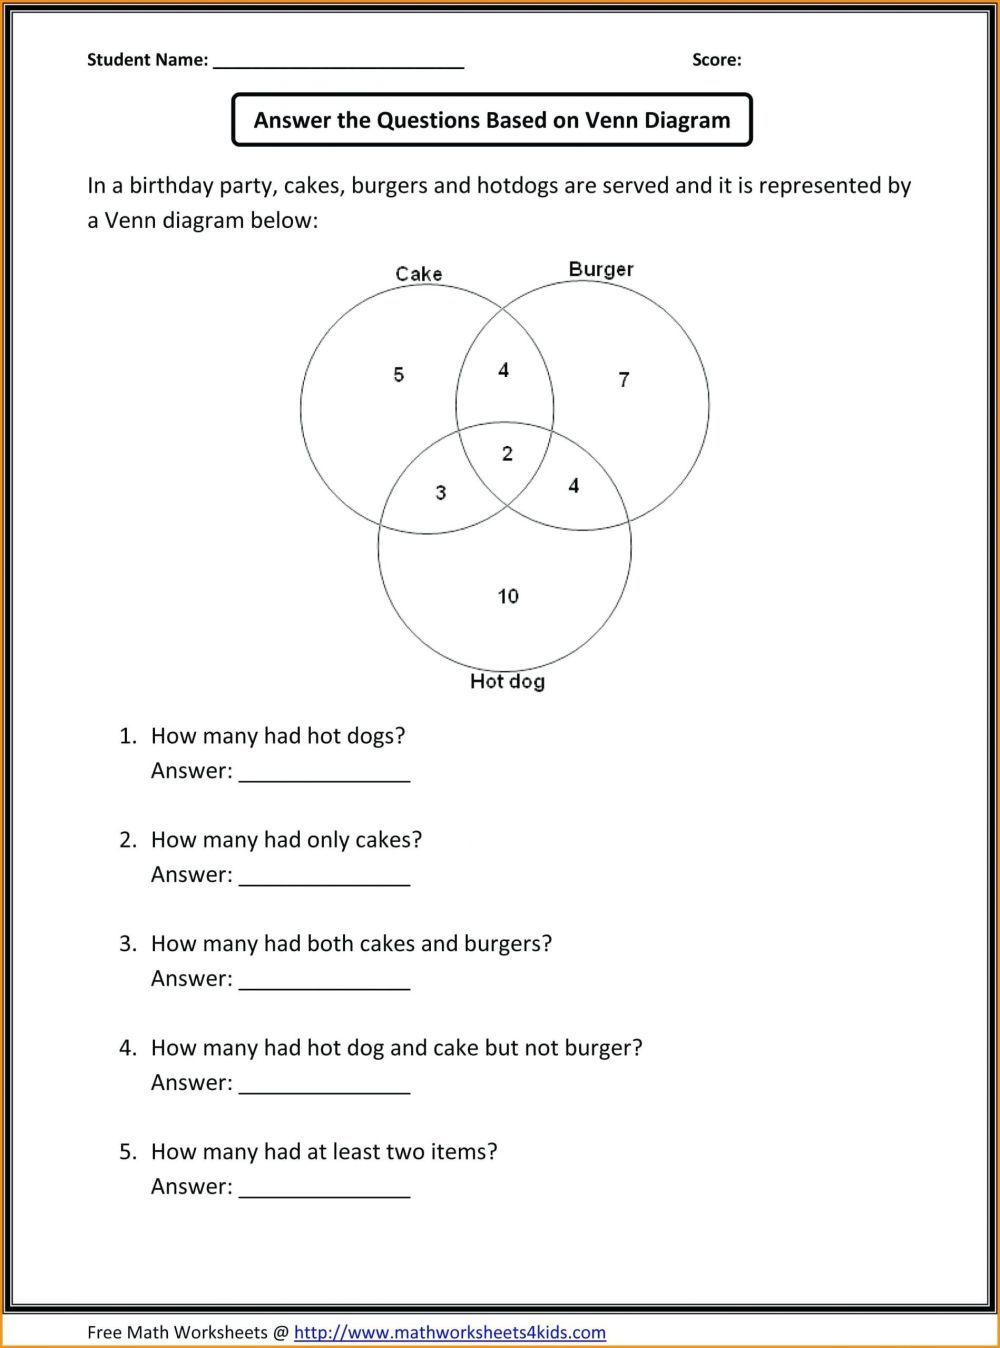 medium resolution of 5 Free Math Worksheets Third Grade 3 Division Division Facts Missing Number  1 12 - AMP